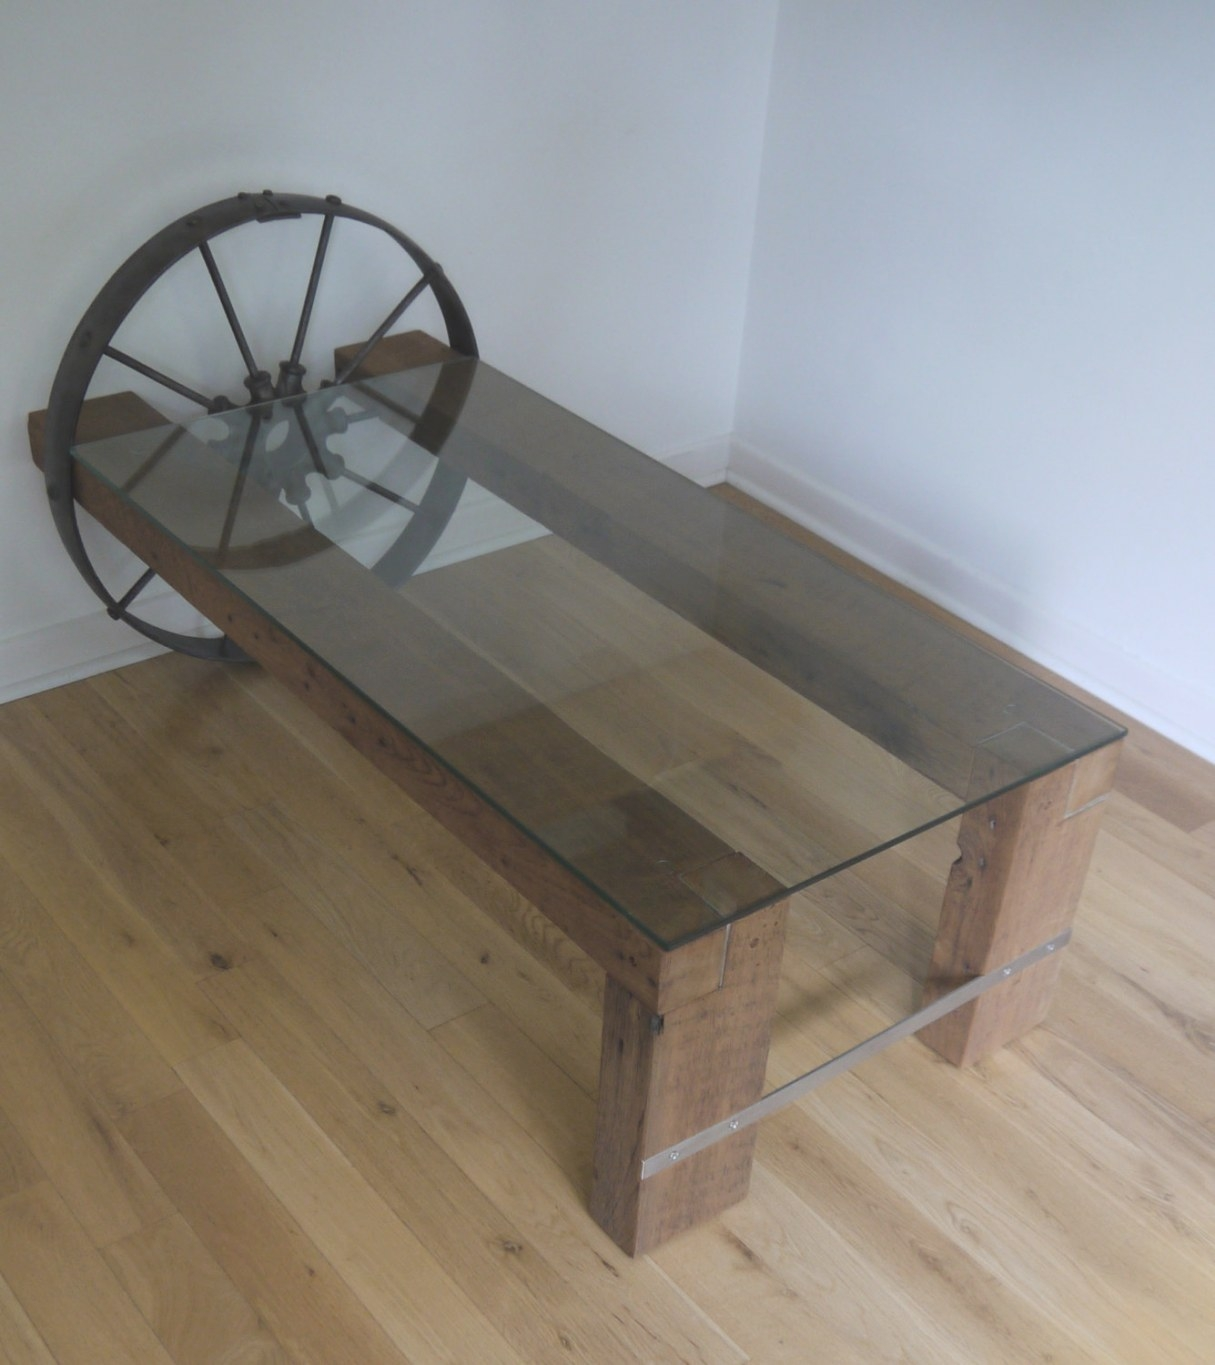 Reclaimed Wood And Glass Coffee Table. Barn Wood throughout Wood And Glass Coffee Table